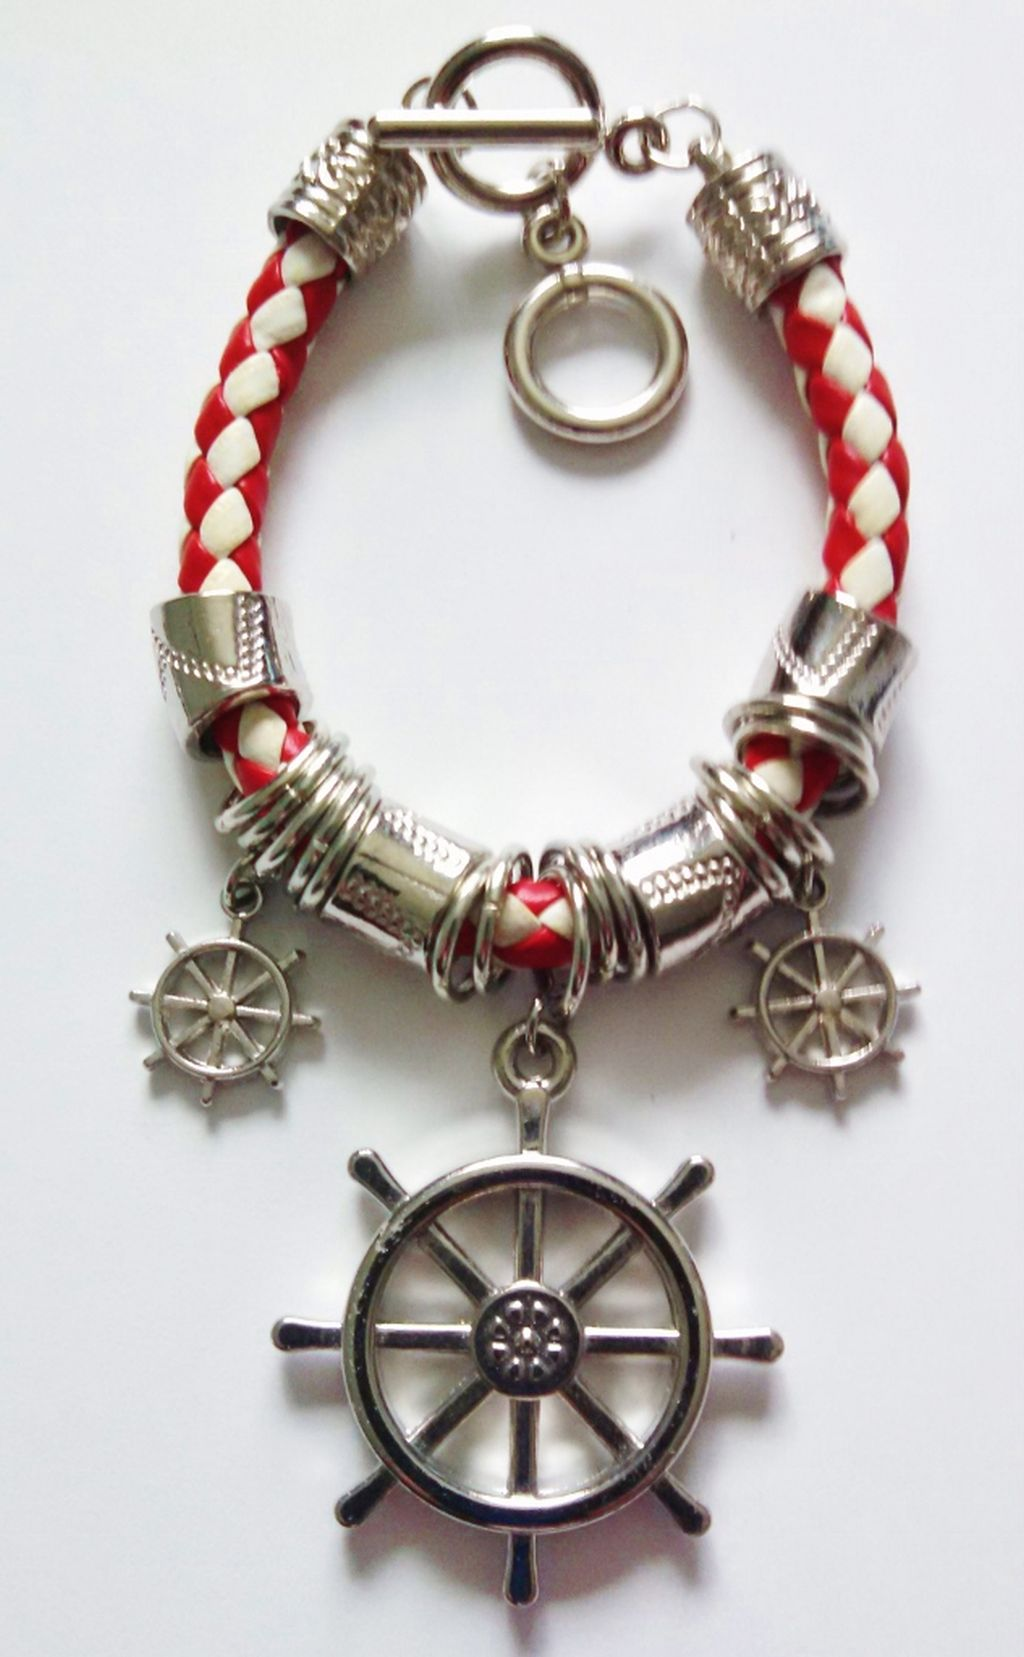 Silver Naval Ship Wheel Sailing Charm Bracelet, Nautical Jewelry Red/White